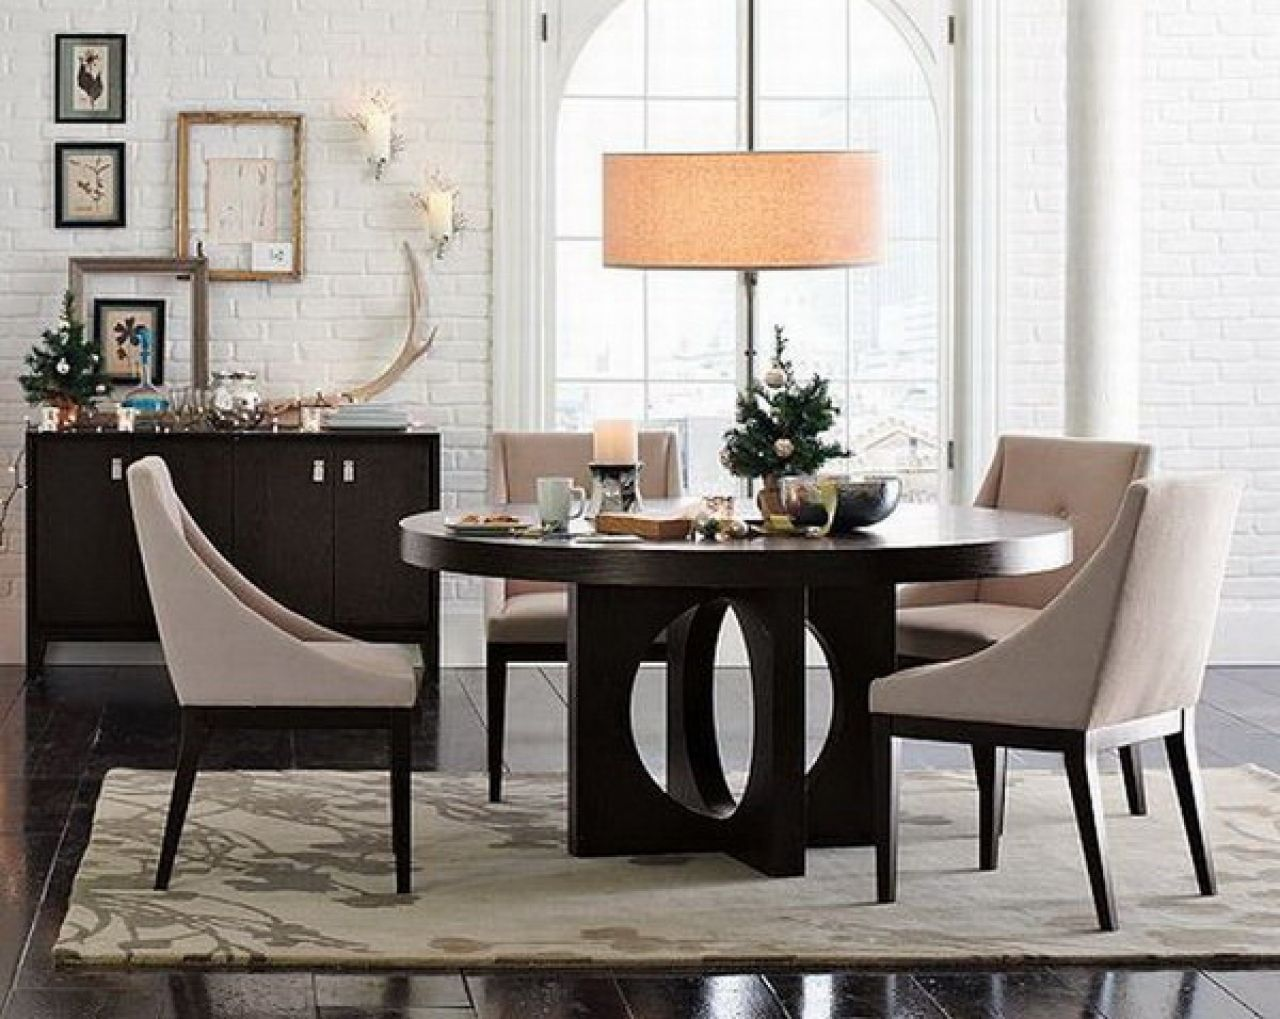 Dining Room Furniture   Transitional Dining Room Set From West Elm